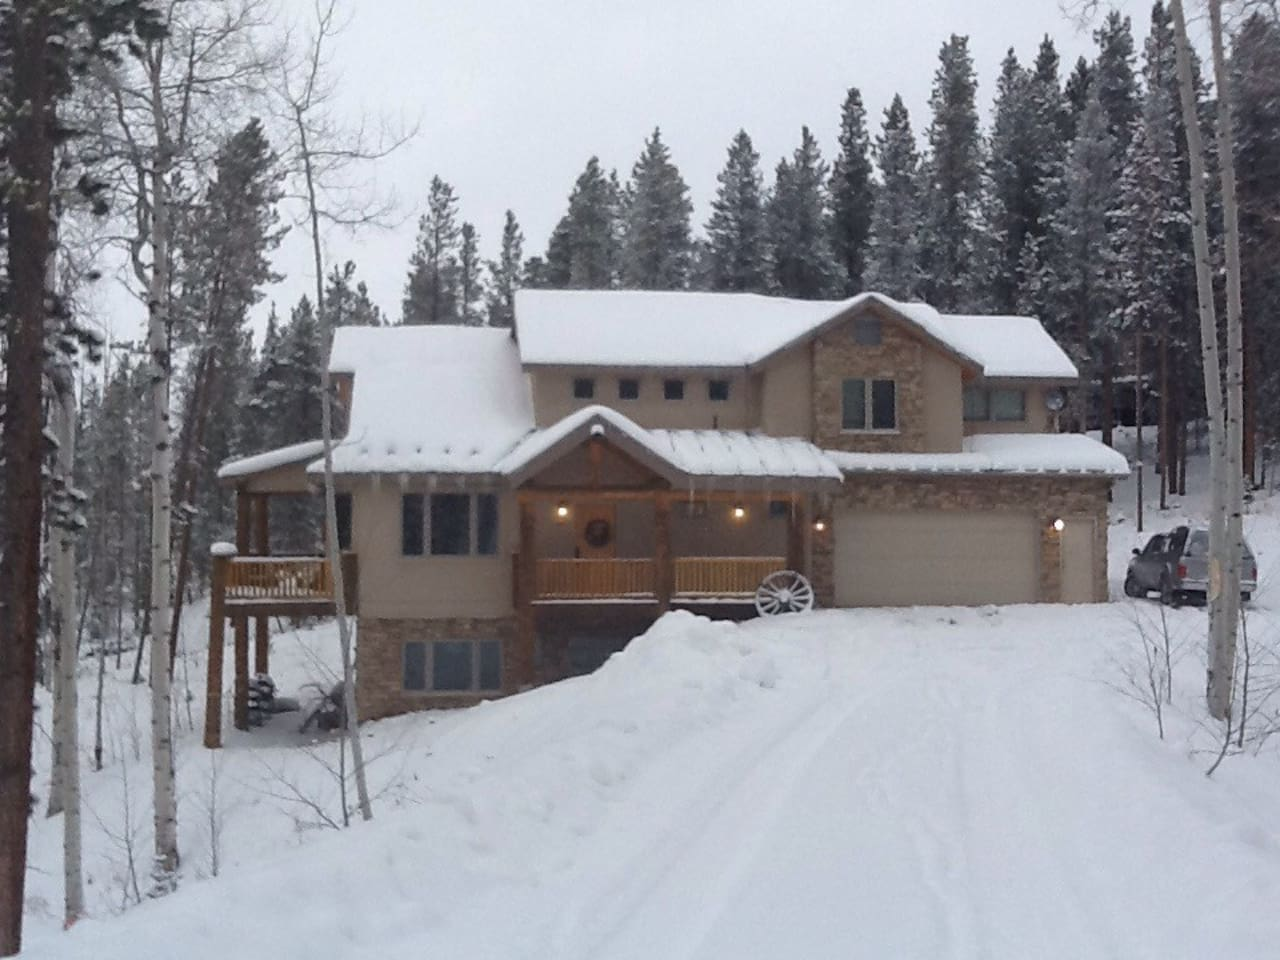 Beautiful home, wooded surroundings and wildlife, but cozy on 2 acres. Ample parking for 2-3 cars, and private deck with hot tub. Heated garage!